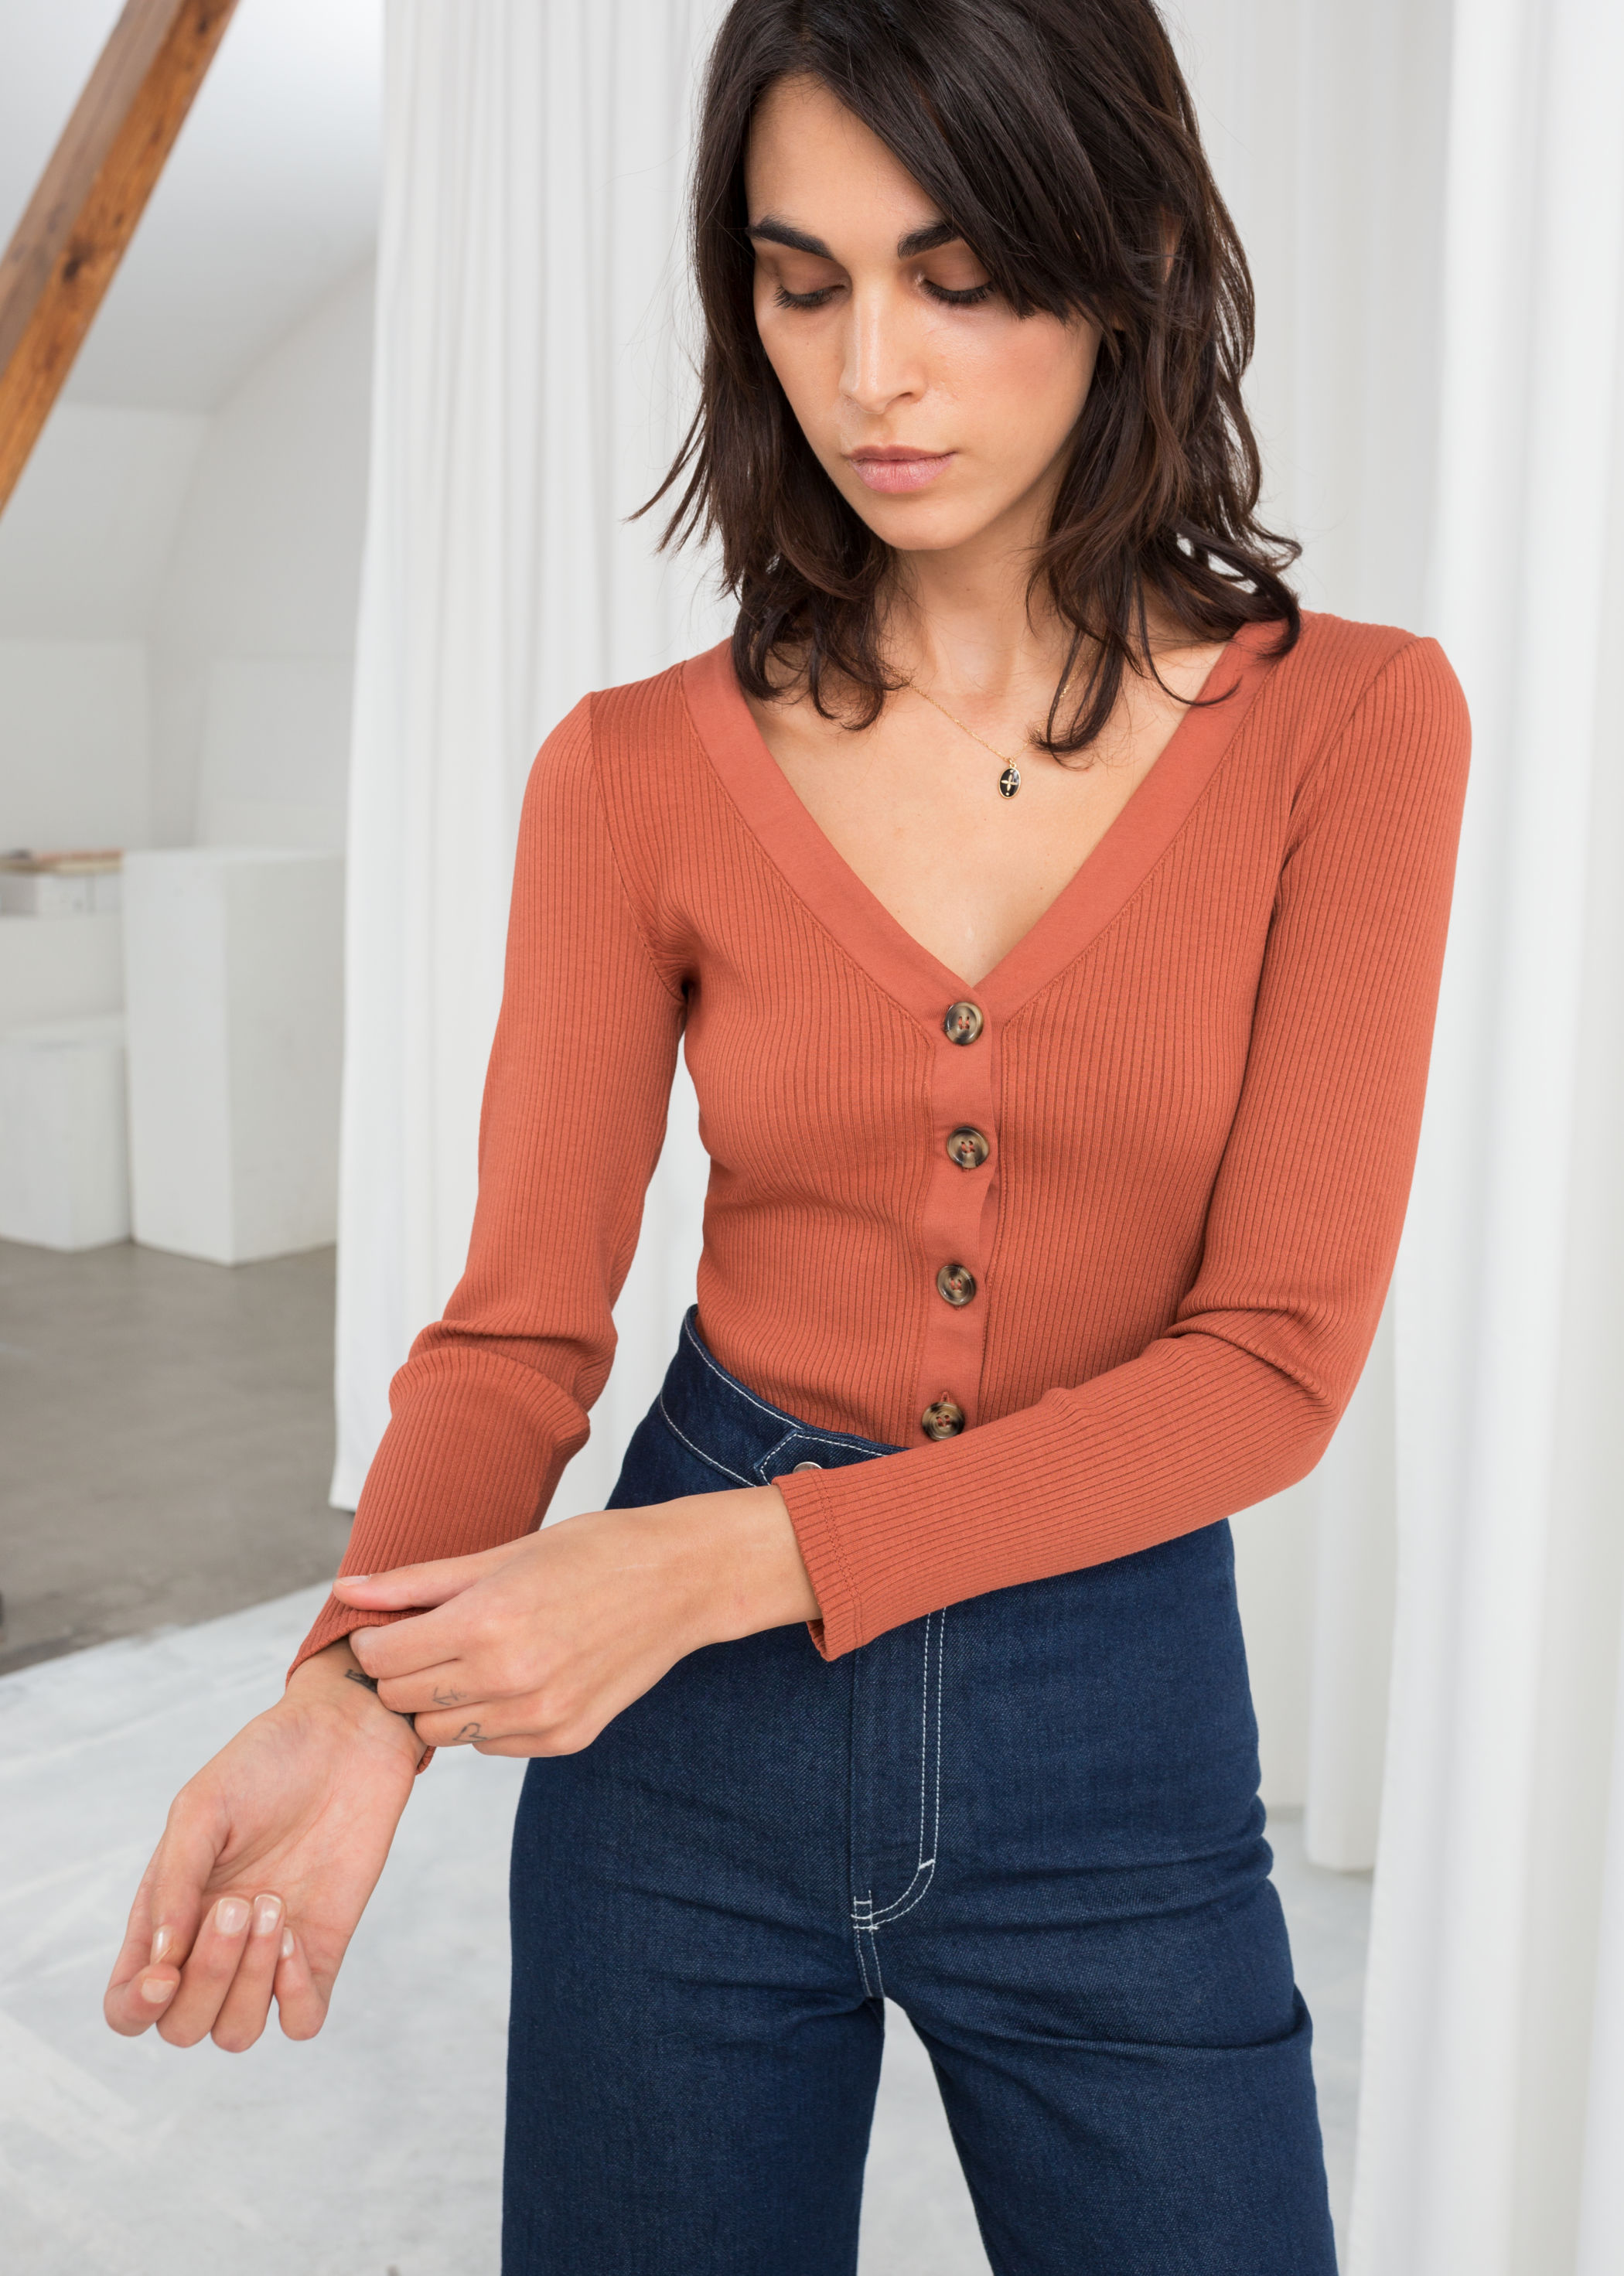 ROSE & IVY Journal The Find A Buttoned Up Cardigan